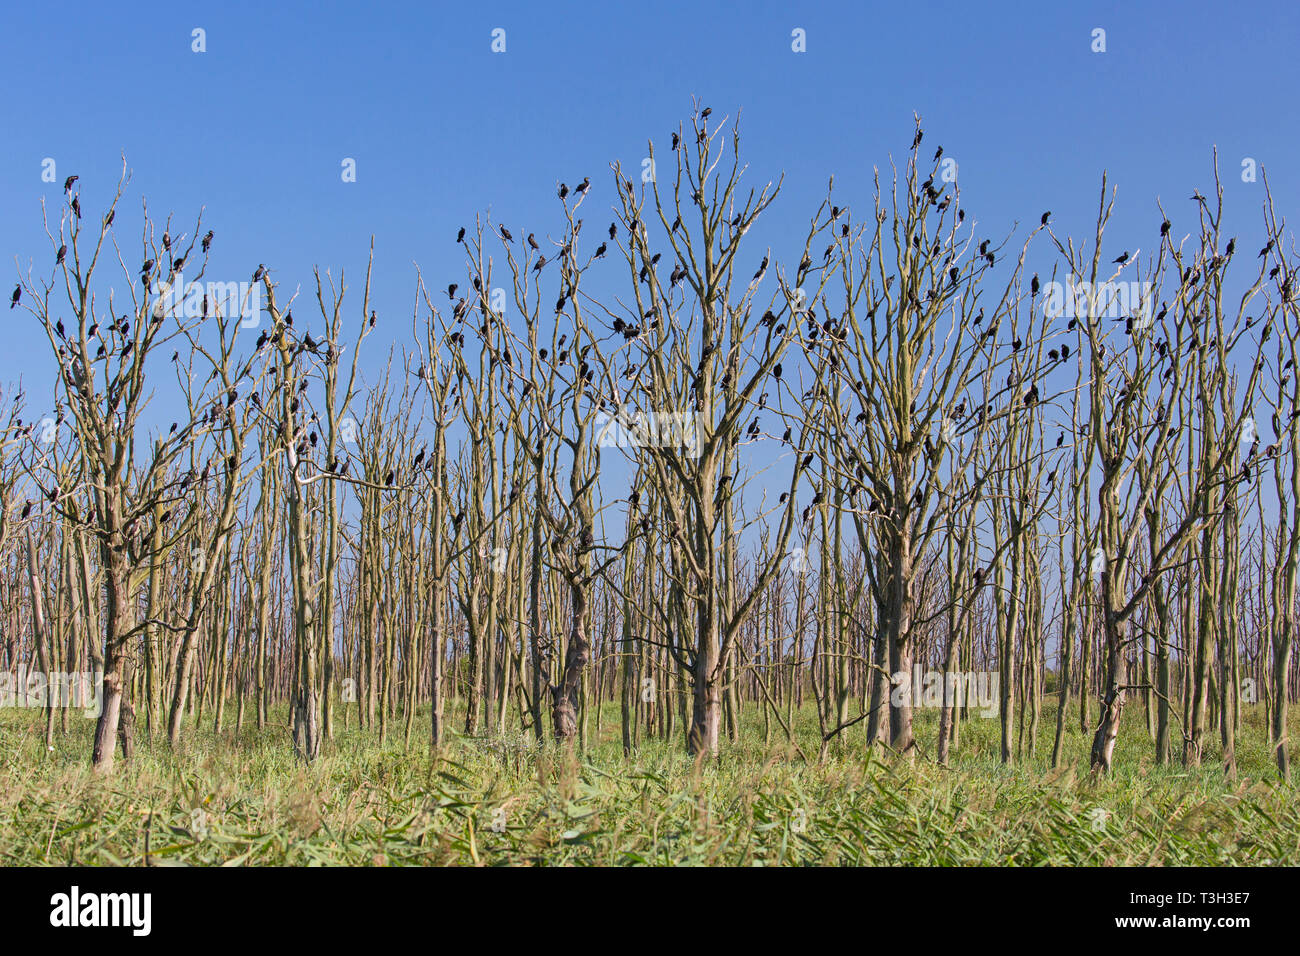 Great cormorants (Phalacrocorax carbo) colony perched in dead trees in summer, Anklamer Stadtbruch nature reserve, Mecklenburg-West Pomerania, Germany - Stock Image